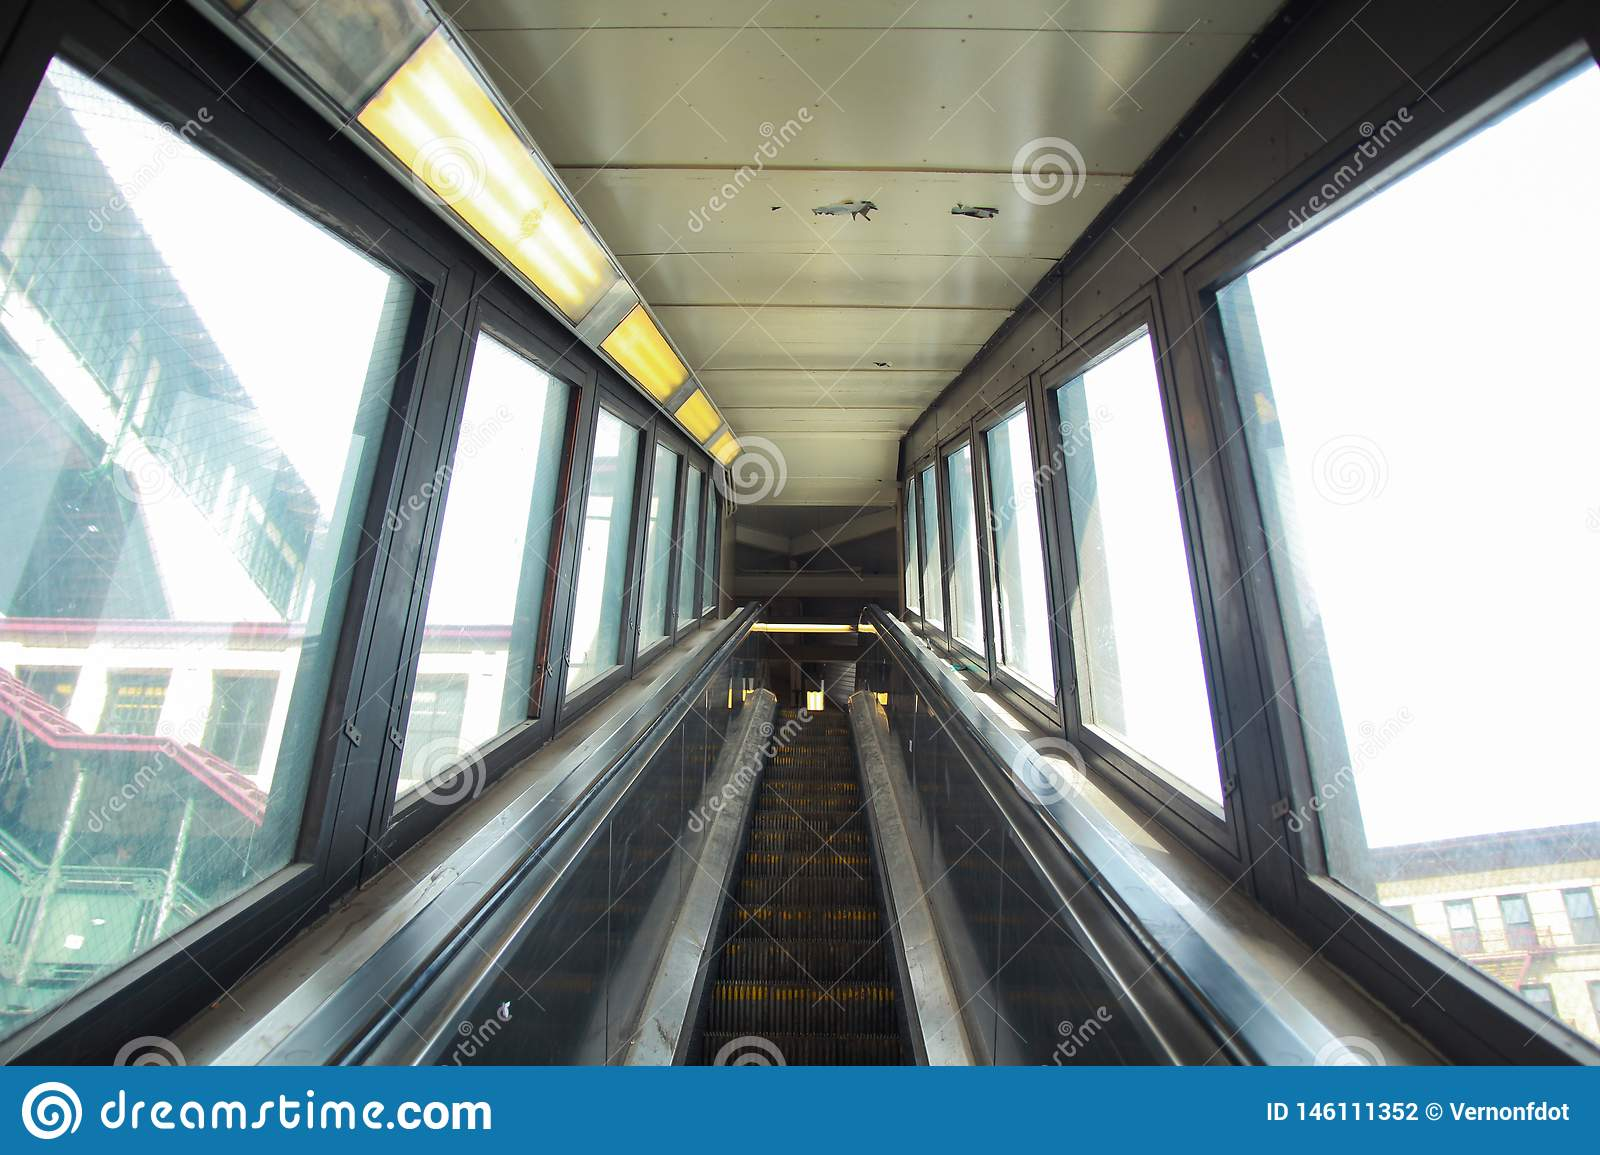 Escalator going up to train station in new york city